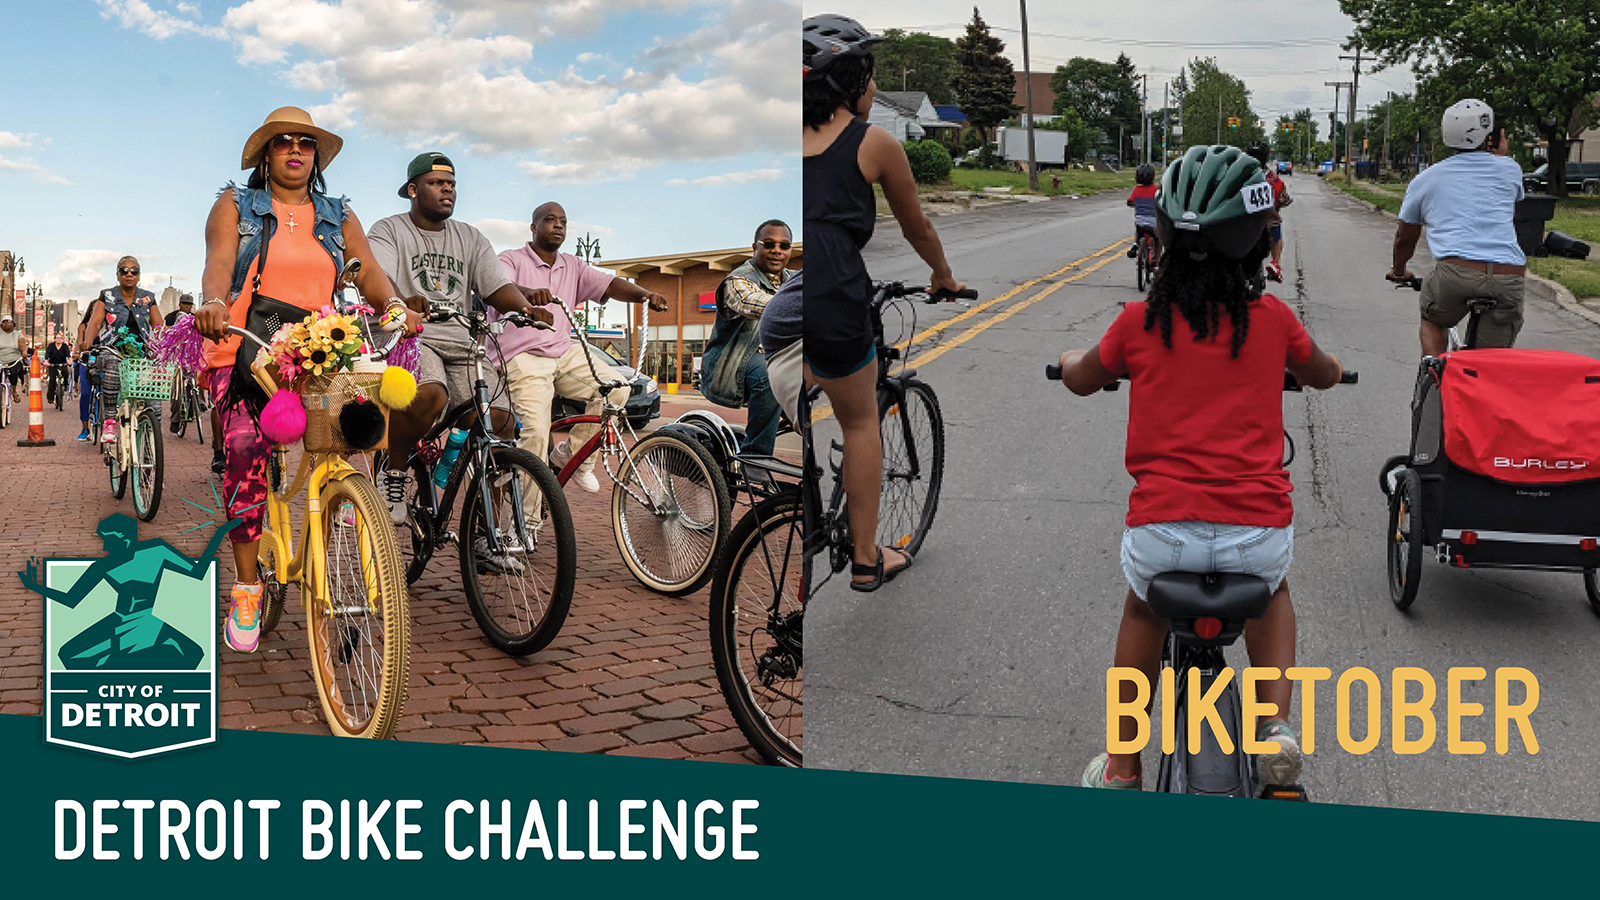 """2 images of people riding bikes with a text overlay that says """"Biketober - Detroit Bike Challenge"""""""